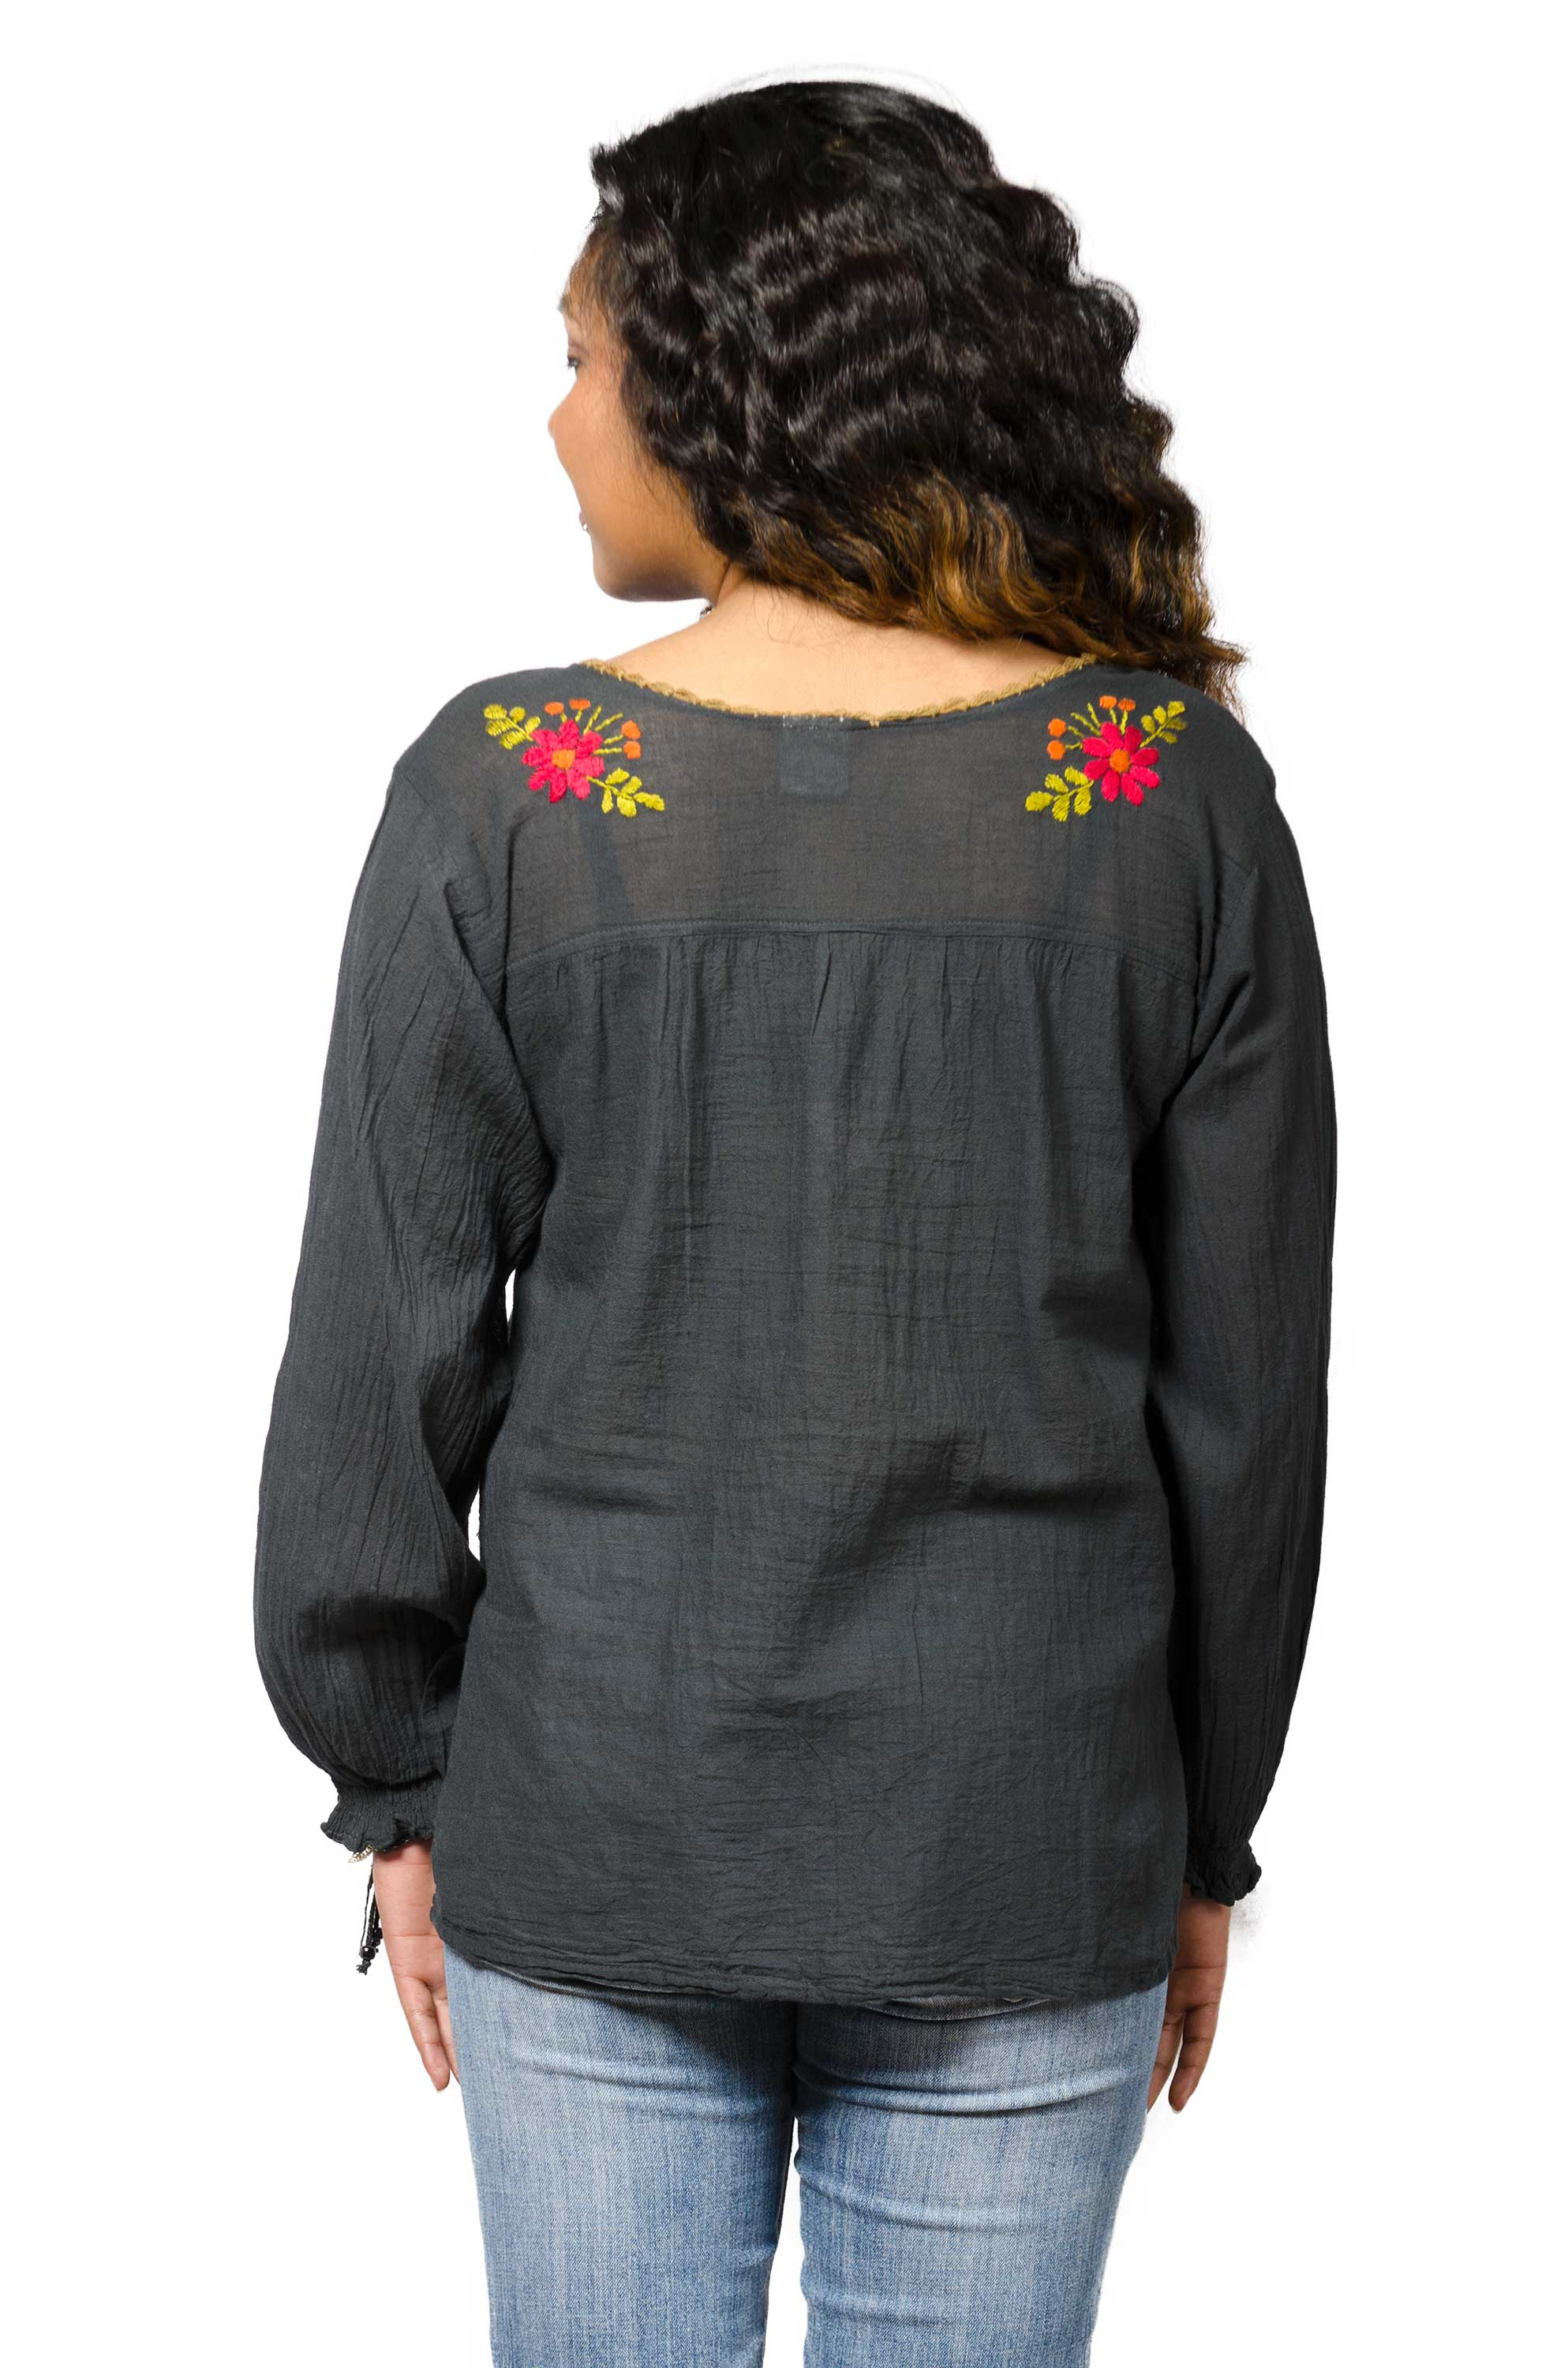 Long Sleeve Embroidered Peasant Blouse - Charcoal